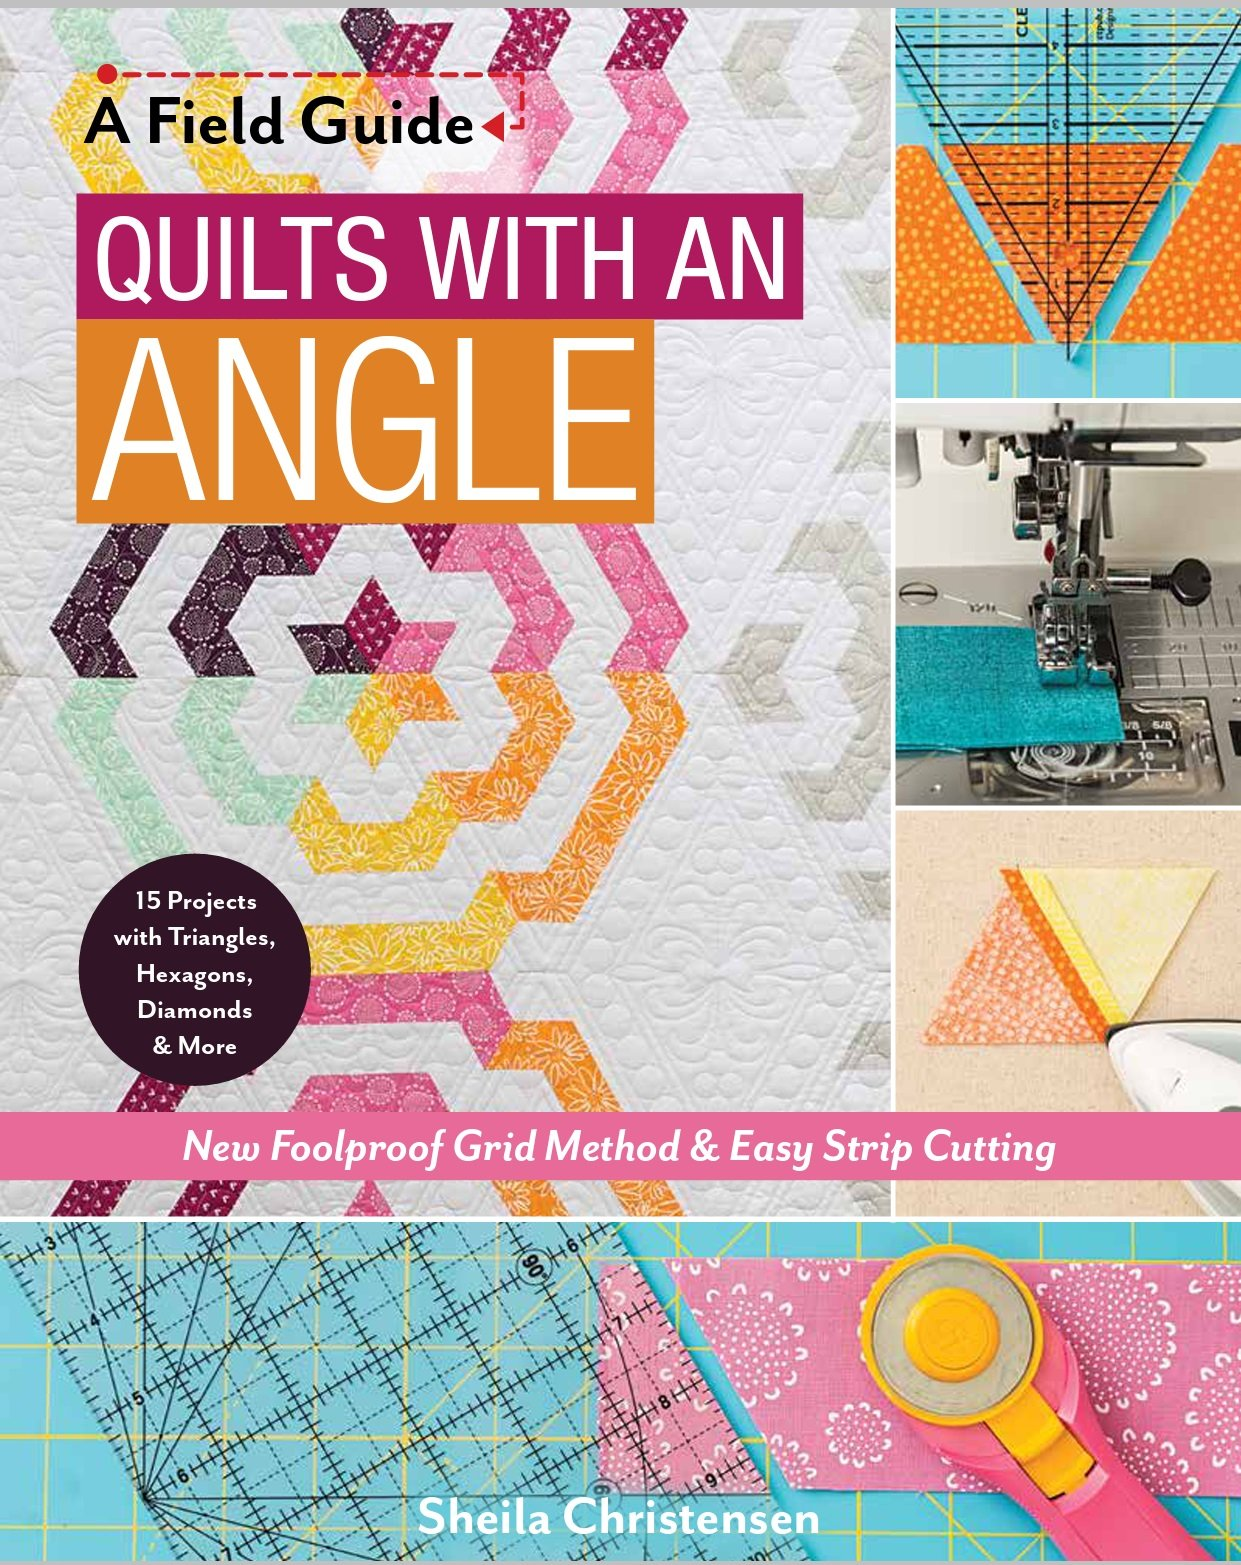 Quilts with an Angle by Sheila Christensen